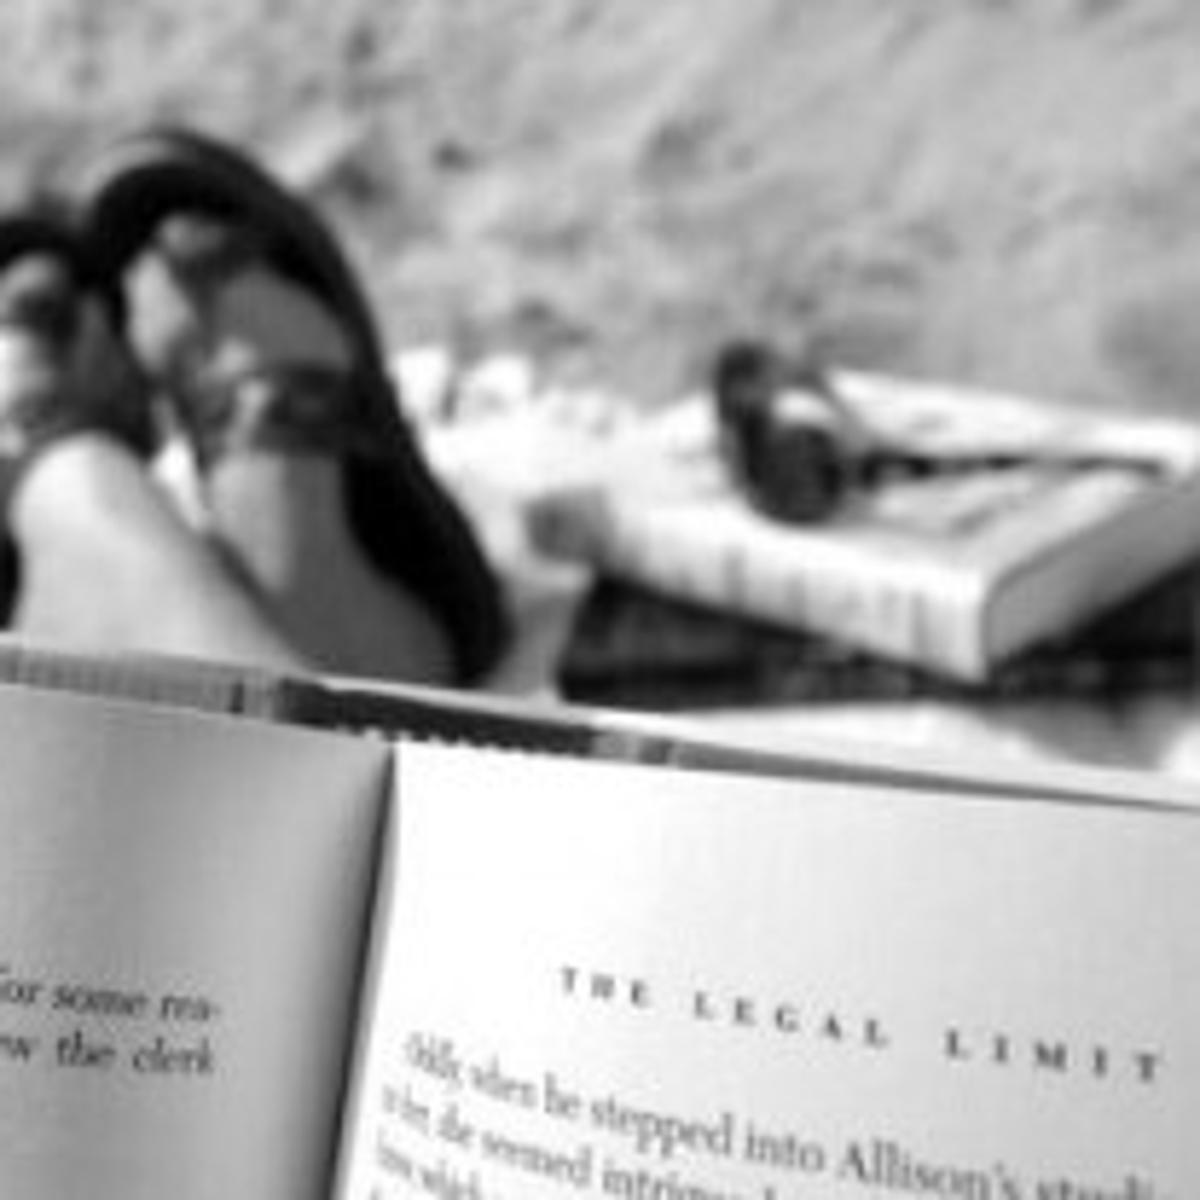 HOT DAYS, COOL READING - Summer season has bounty of page